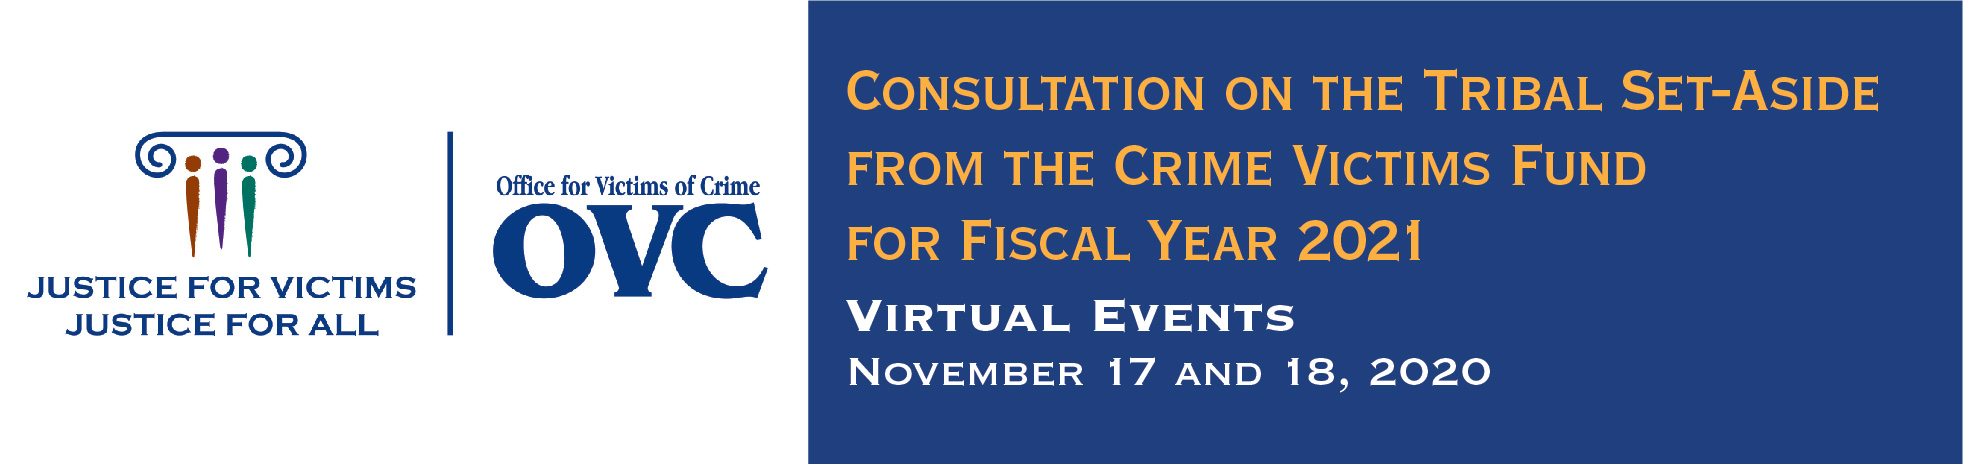 Consultation on the Tribal Set-Aside from the Crime Victims Fund for Fiscal Year 2021 (Virtual Events)